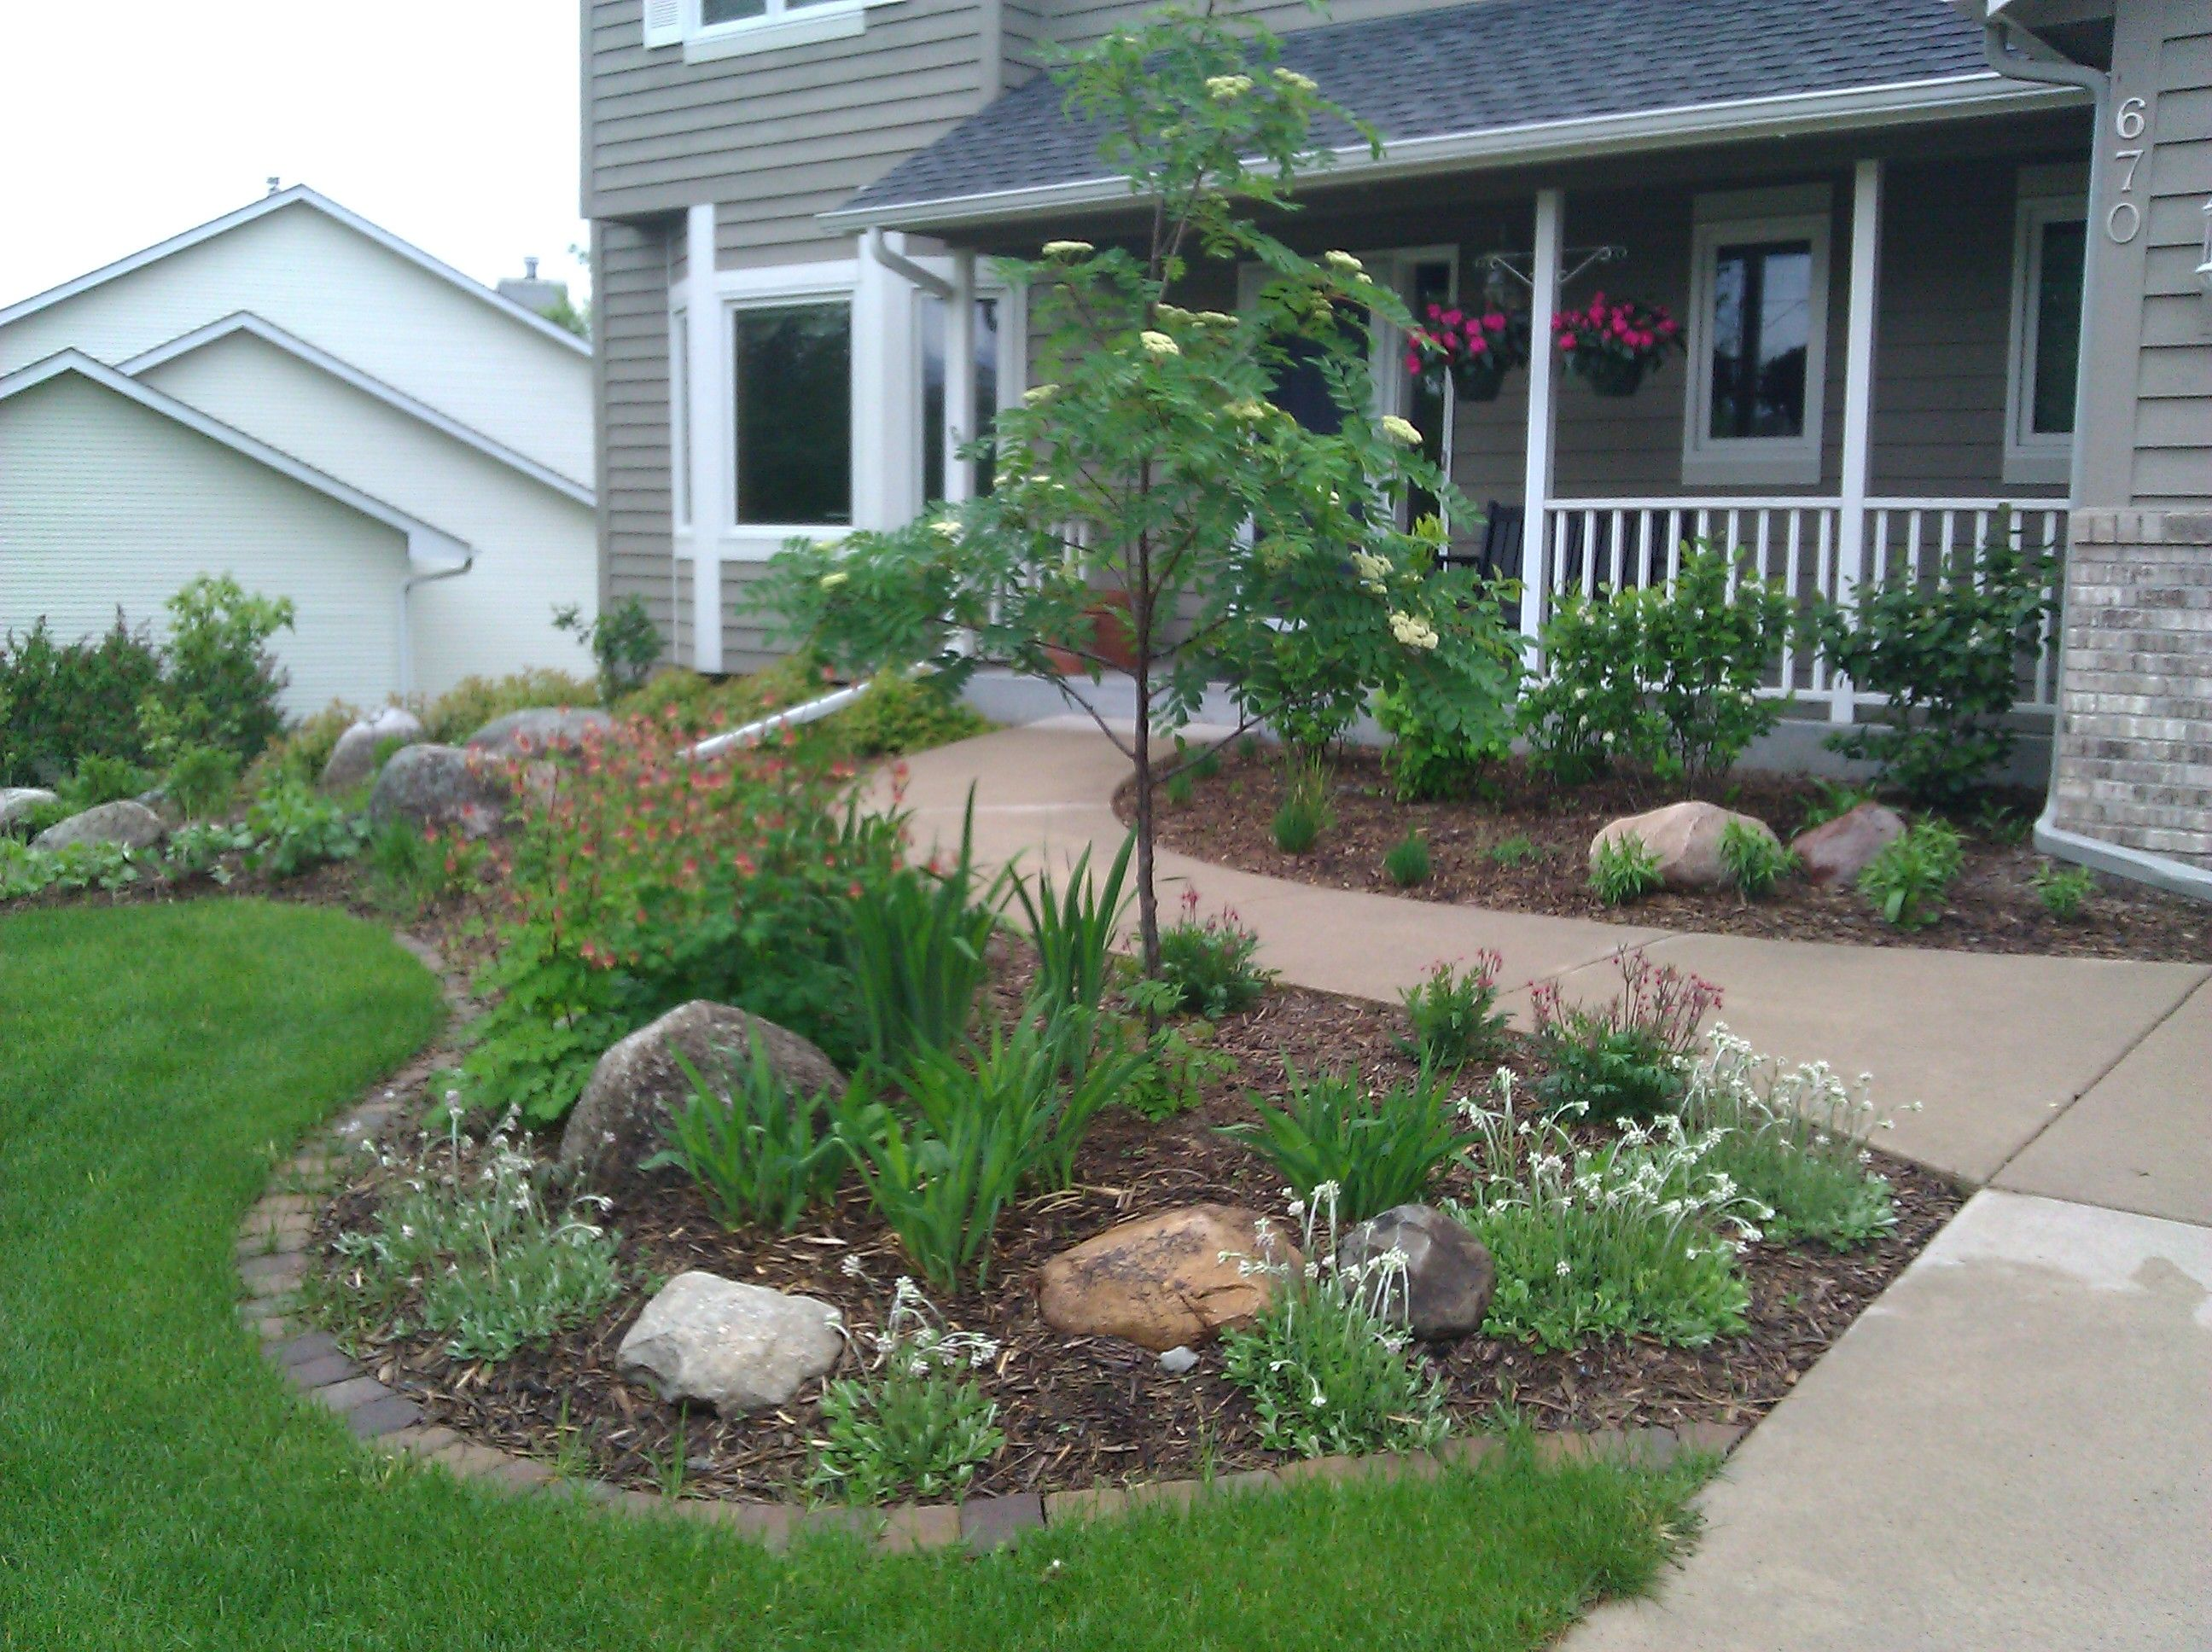 Ecoscapes Sustainable Landscaping Landscape Design Build Do It Yourself Front Yard Garden Small Front Yard Landscaping Front Yard Landscaping Design